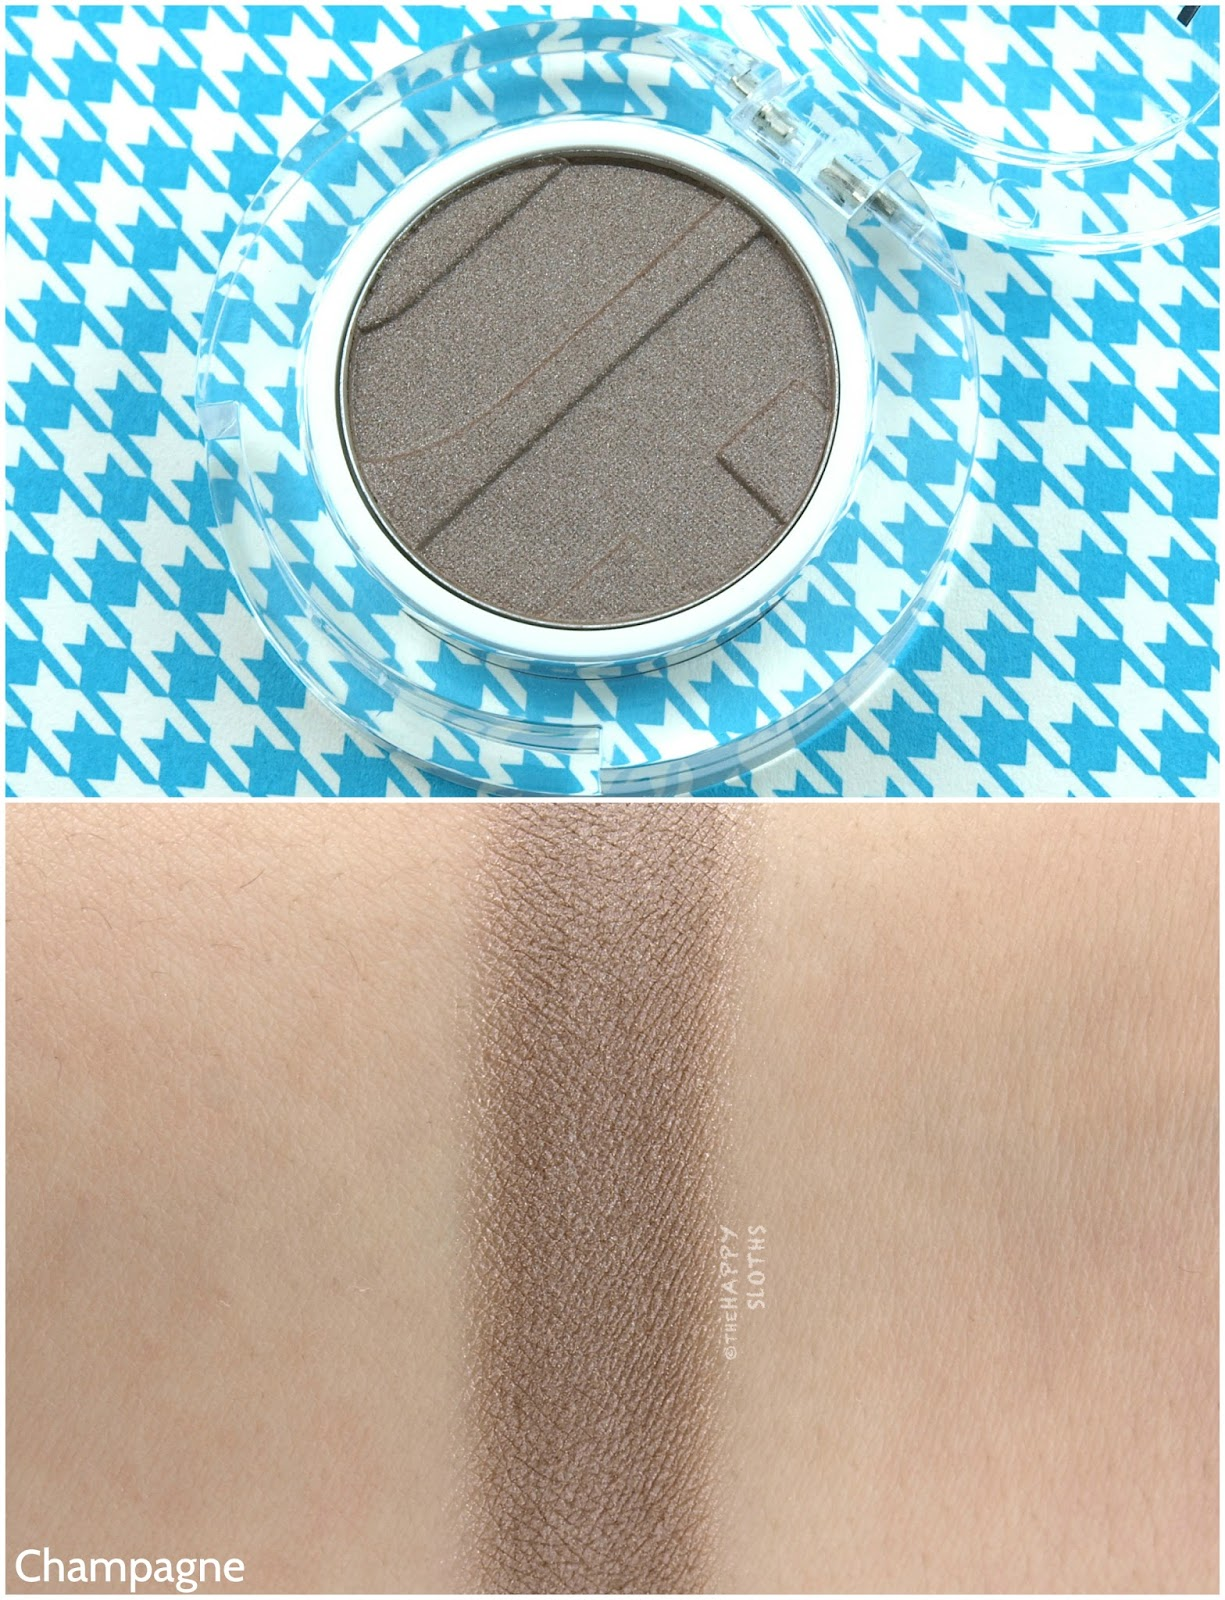 Joe Fresh Beauty Single Eyeshadow in Champagne: Review and Swatches